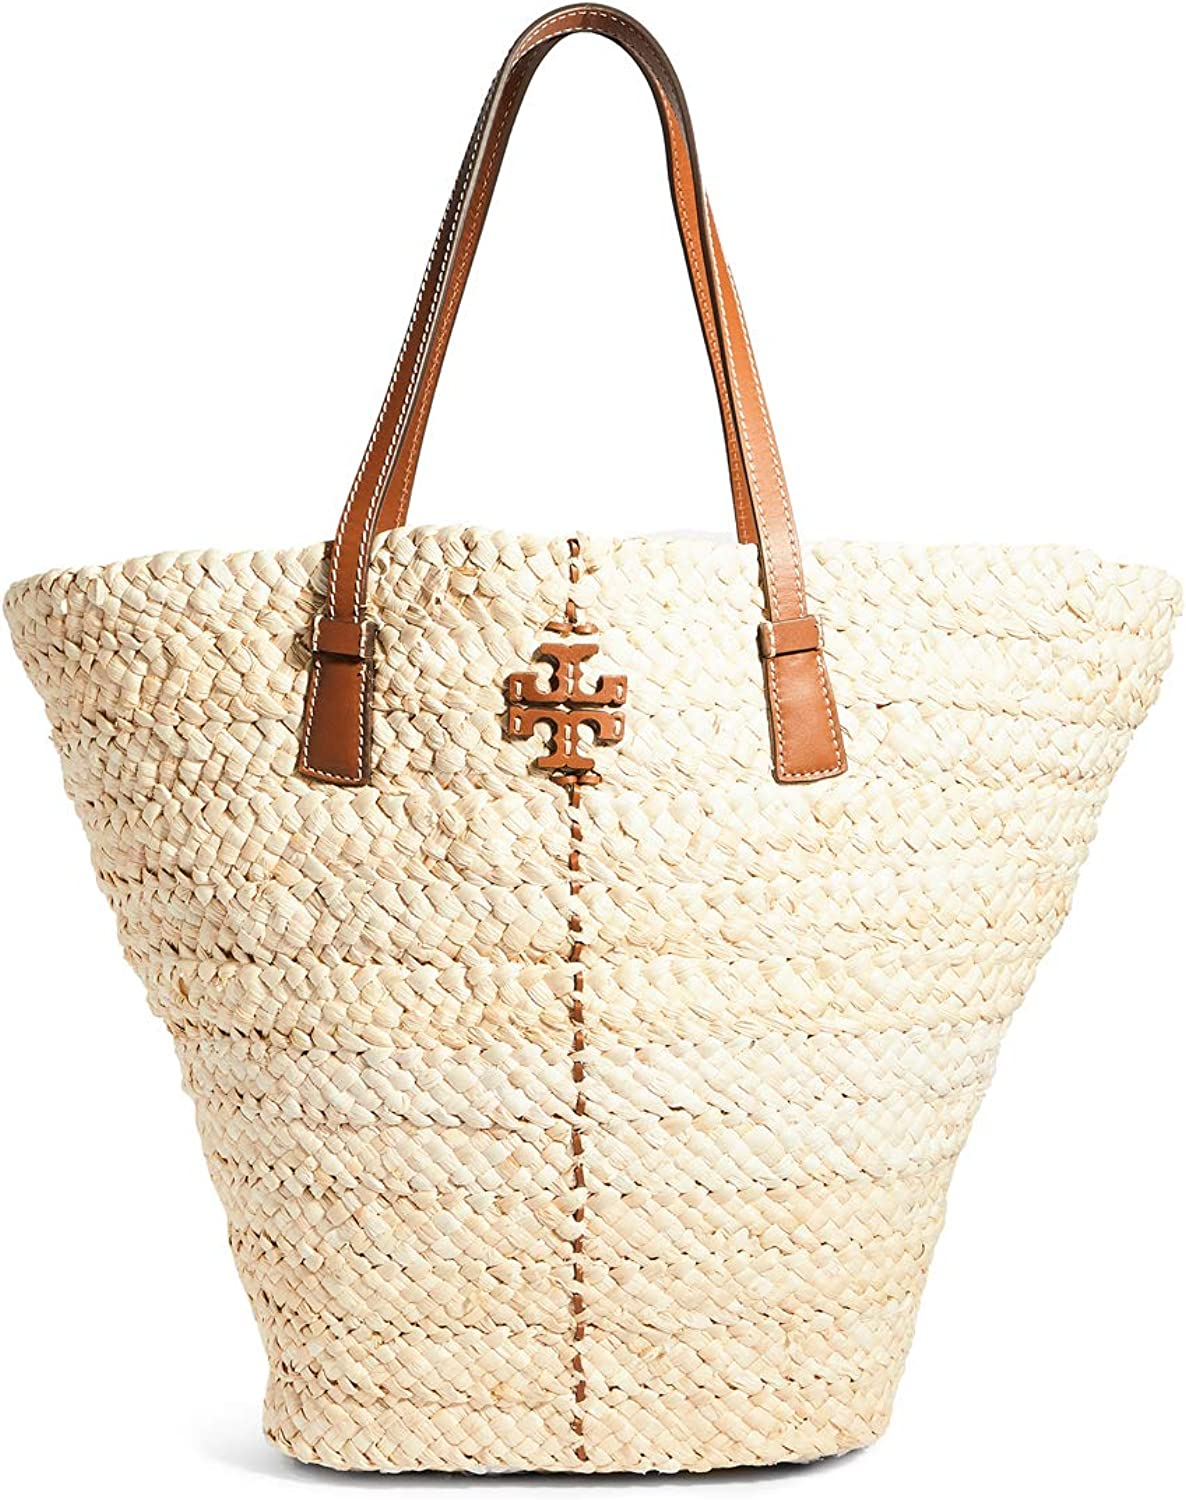 Tory Ranking TOP19 All items free shipping Burch Women's Tote McGraw Straw